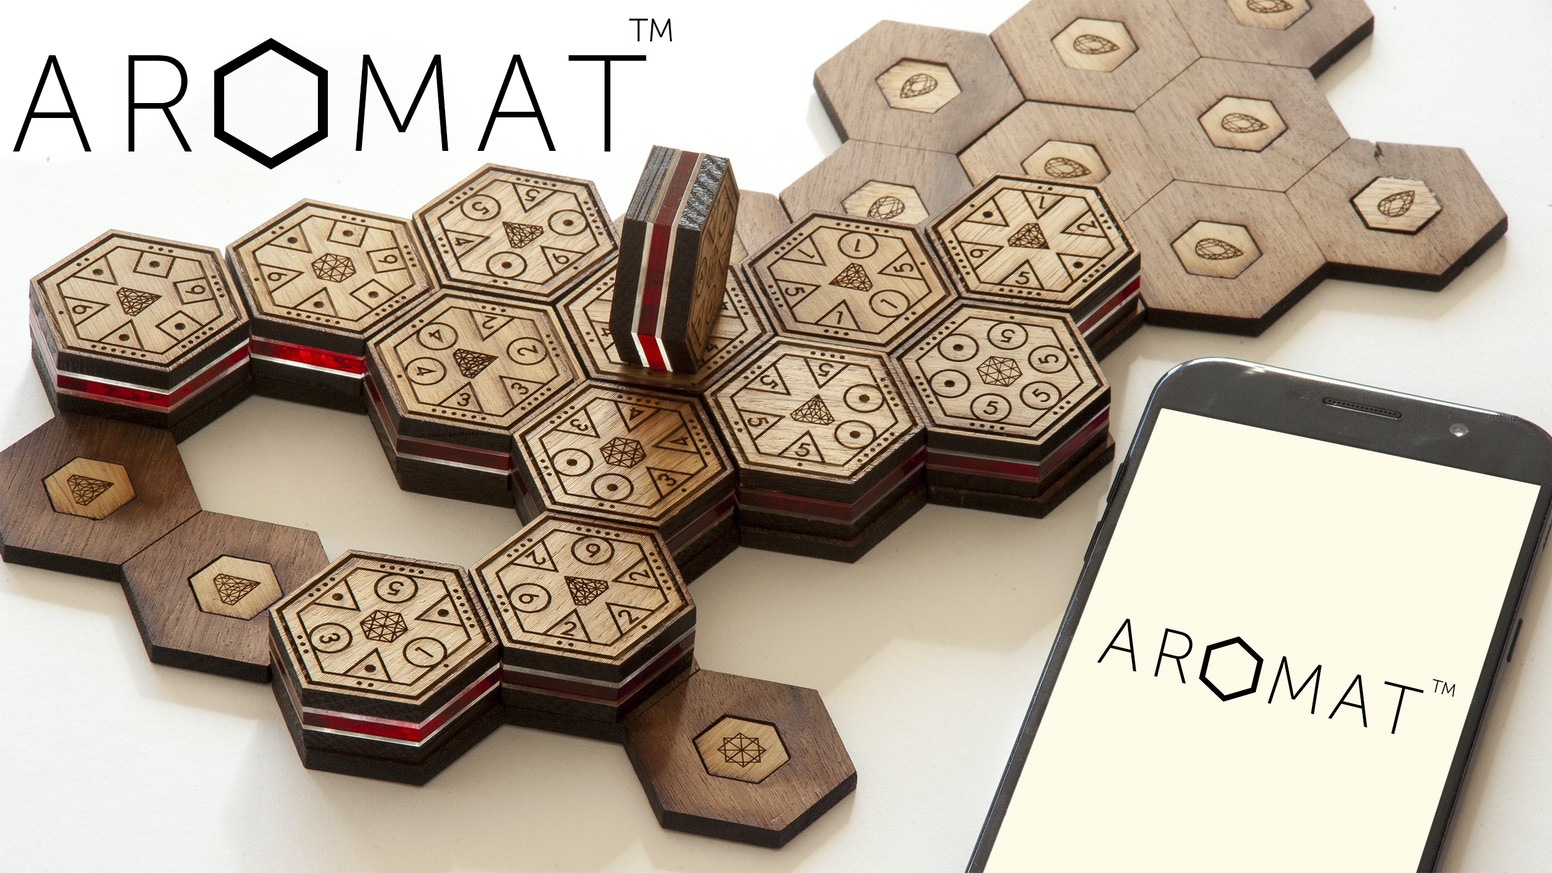 Luxuriously engraved wooden board game + app with highly aesthetic design, deep strategic possibilities & a huge variety in gameplay